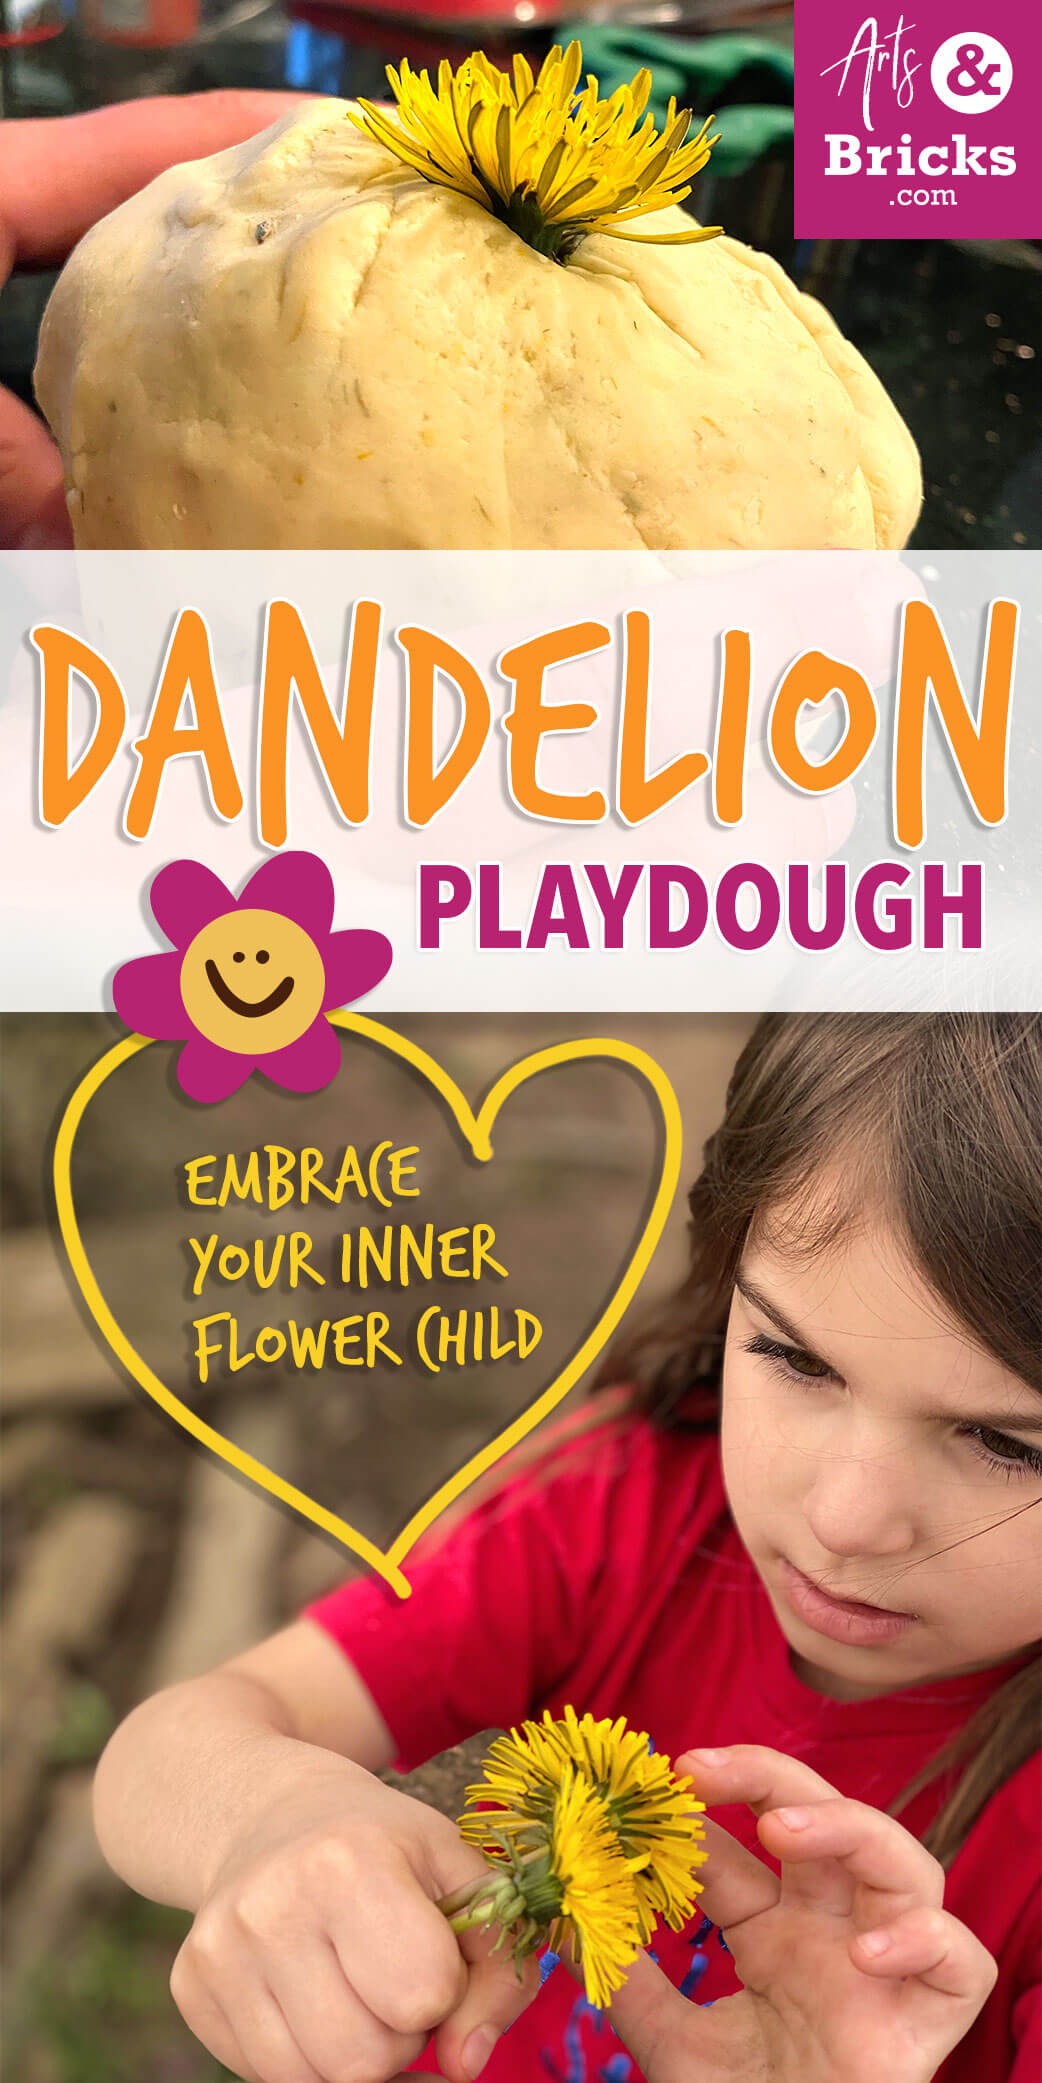 Embrace your inner flower child with this simple Dandelion Playdough recipe. No cook and doesn't require Cream of Tartar. #playdoughrecipe #playdough #dandelion #flower #flowercrafts #forkids #flowerplaydough #nocook #nocreamoftartar #sensoryplay #homemade